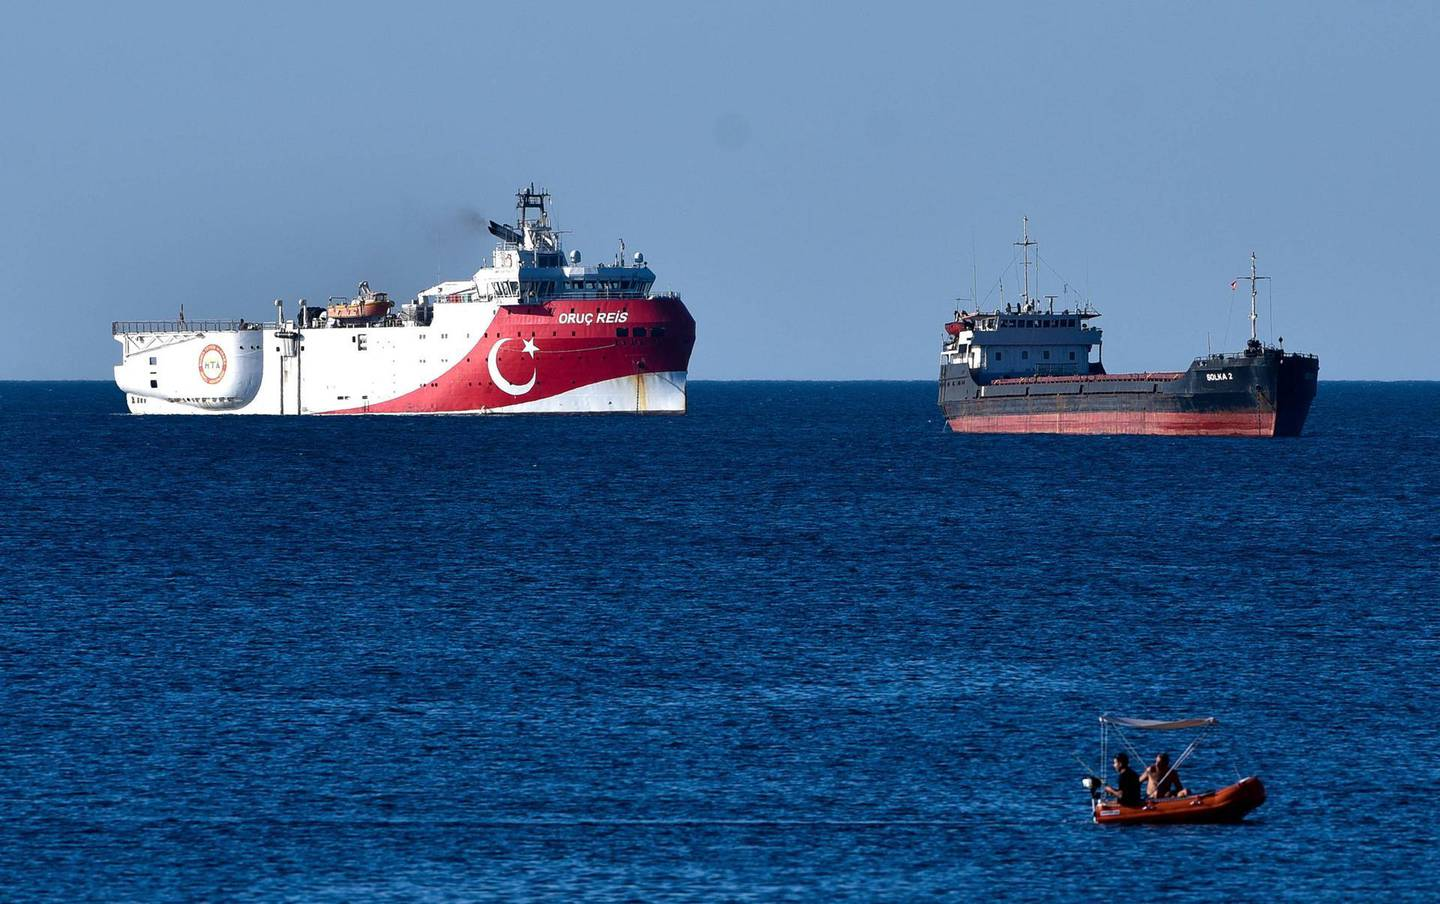 """In this photograph taken from the Mediterranean shores near the city of Antalya, Turkey, a merchant ship, top right, sails past the research vessel Oruc Reis, Thursday, July 23, 2020. Greece has warned Thursday it will do """"whatever is necessary"""" to defend its sovereign rights in response to plans by neighbor Turkey to proceed with an oil-and-gas research mission south of Greek islands in the Eastern Mediterranean. The dispute over seabed mineral rights has led to increased navy deployments by both NATO members in the region, where the Oruc Reis, is being prepared for a survey mission. (Ibrahim Laleli/DHA via AP)"""